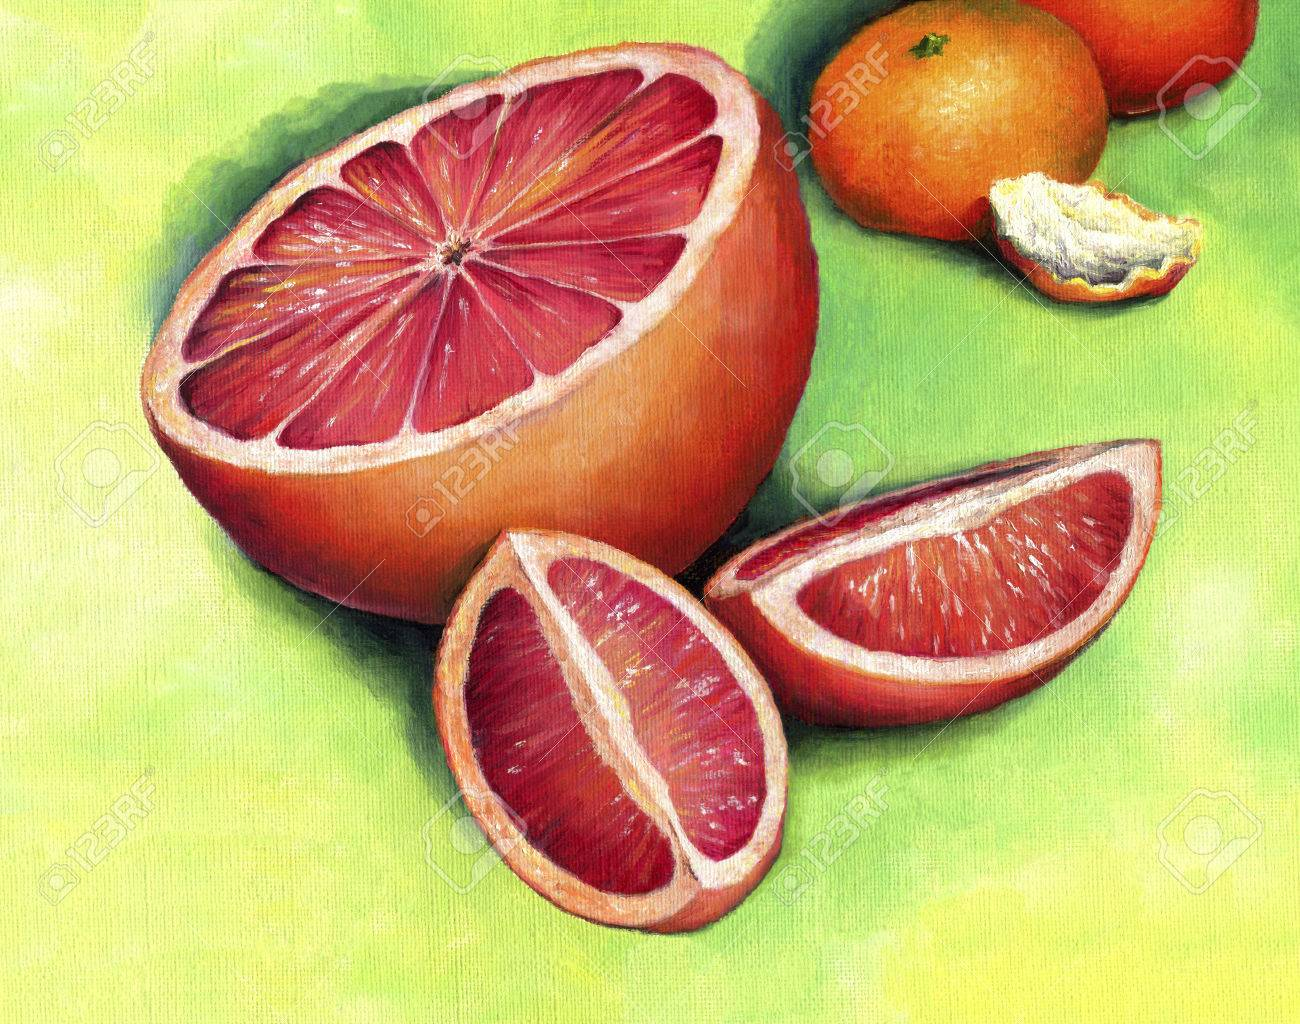 Red grapefruit, painted in oil on canvas. Grapefruit, cut into pieces. - 40319943